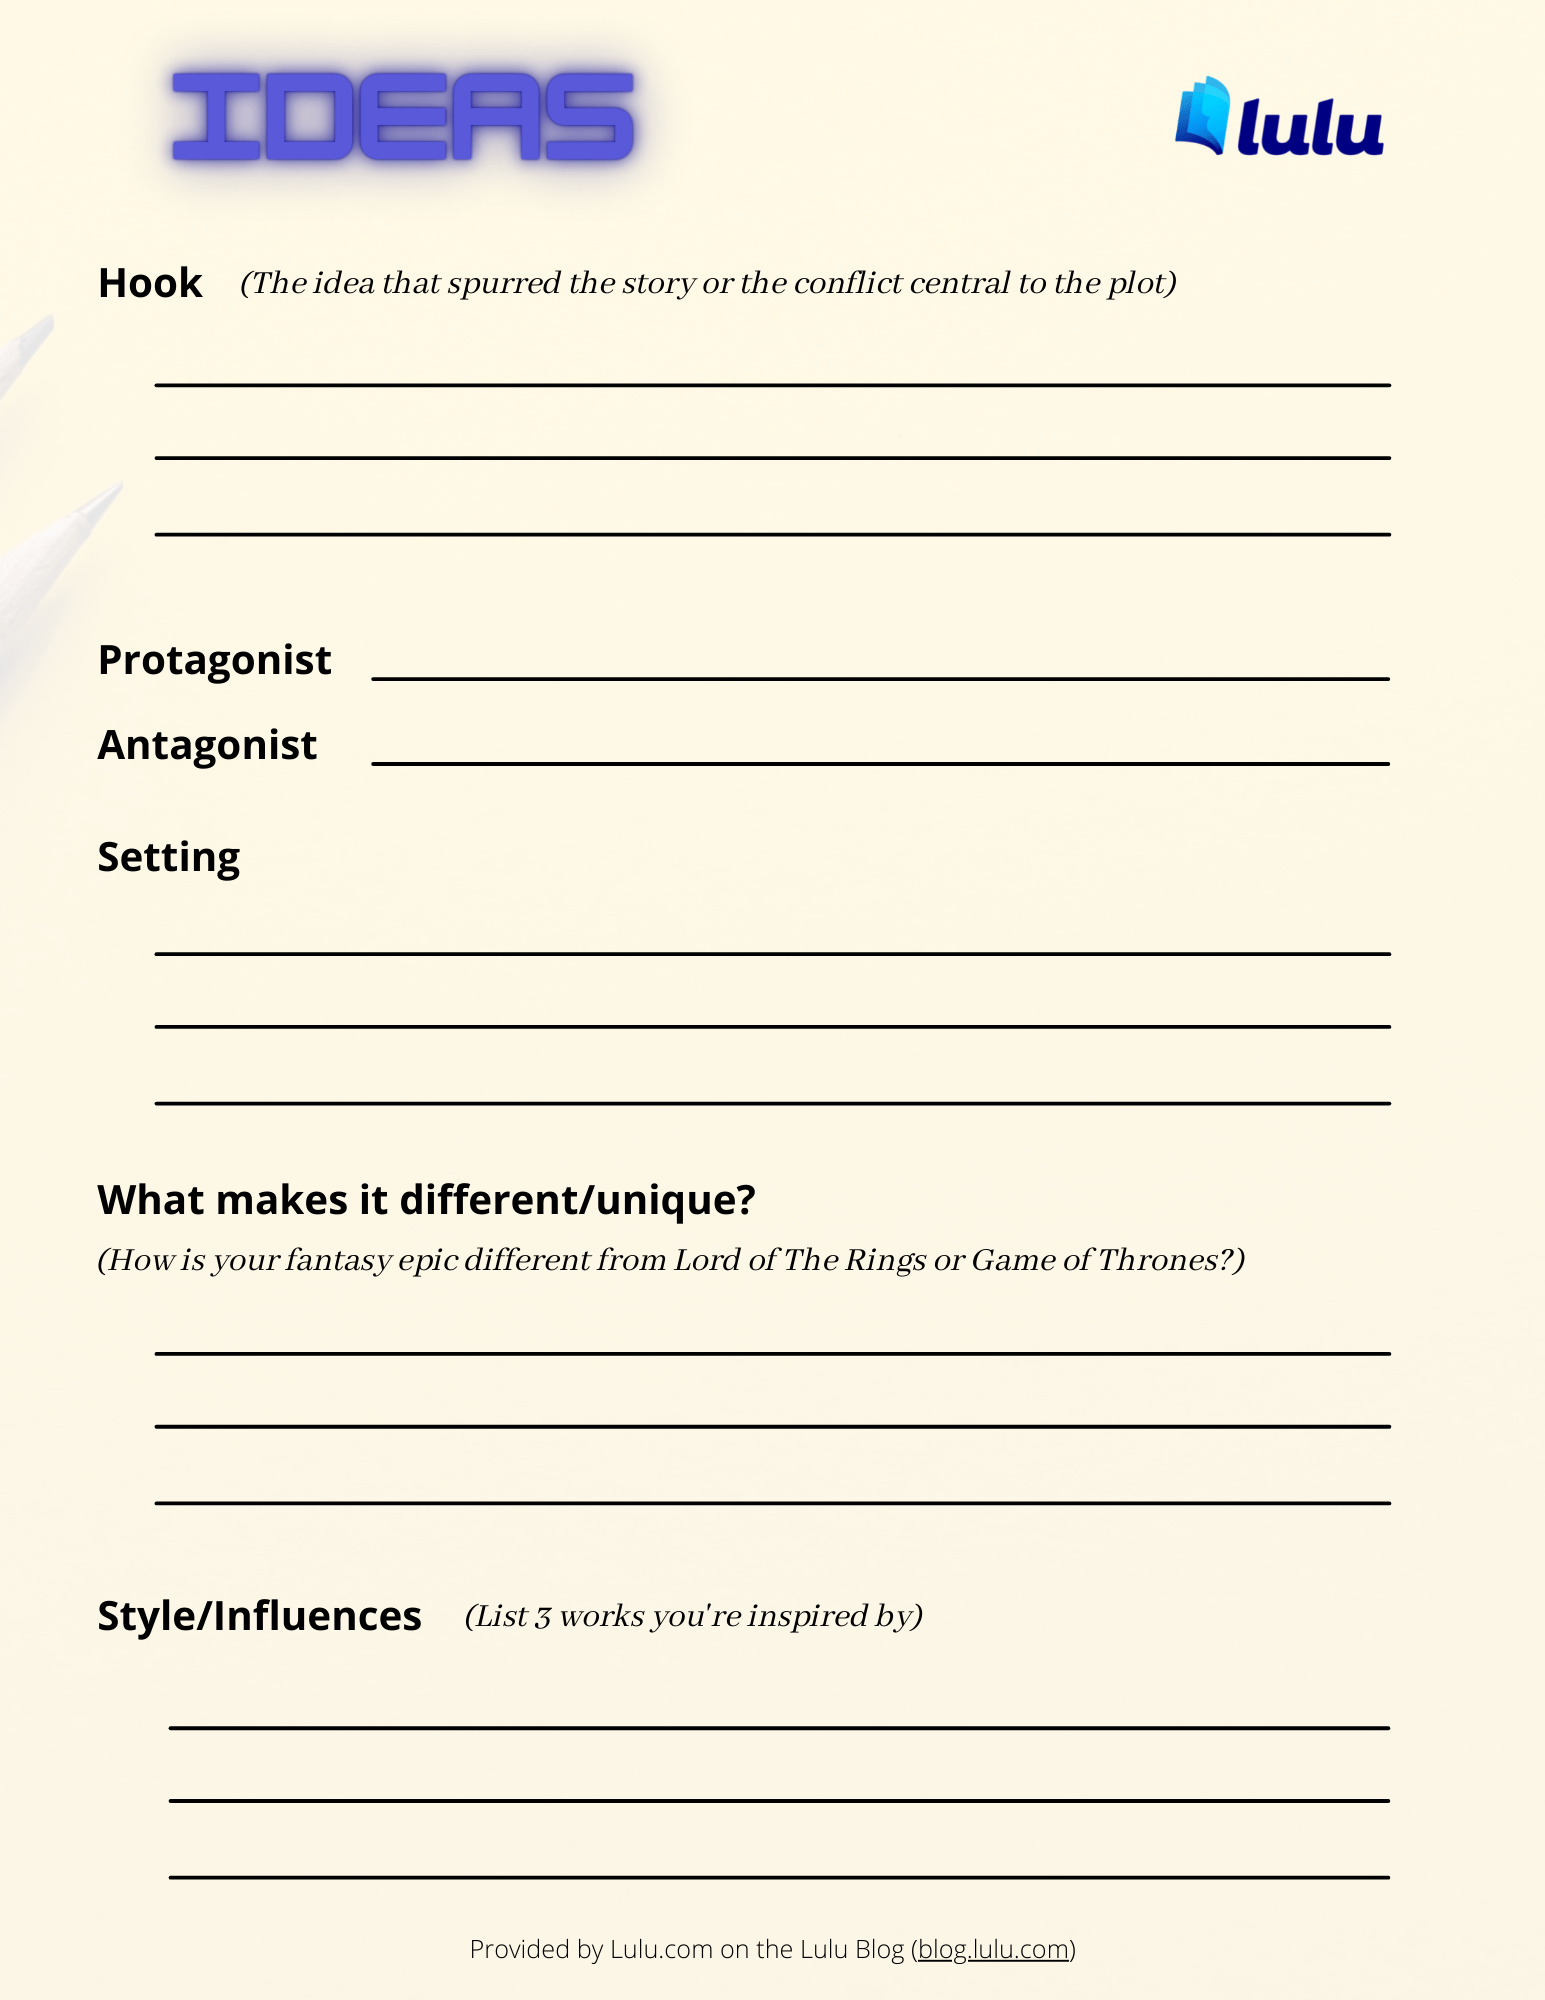 Pauls Idea Form - Get your ideas in order!